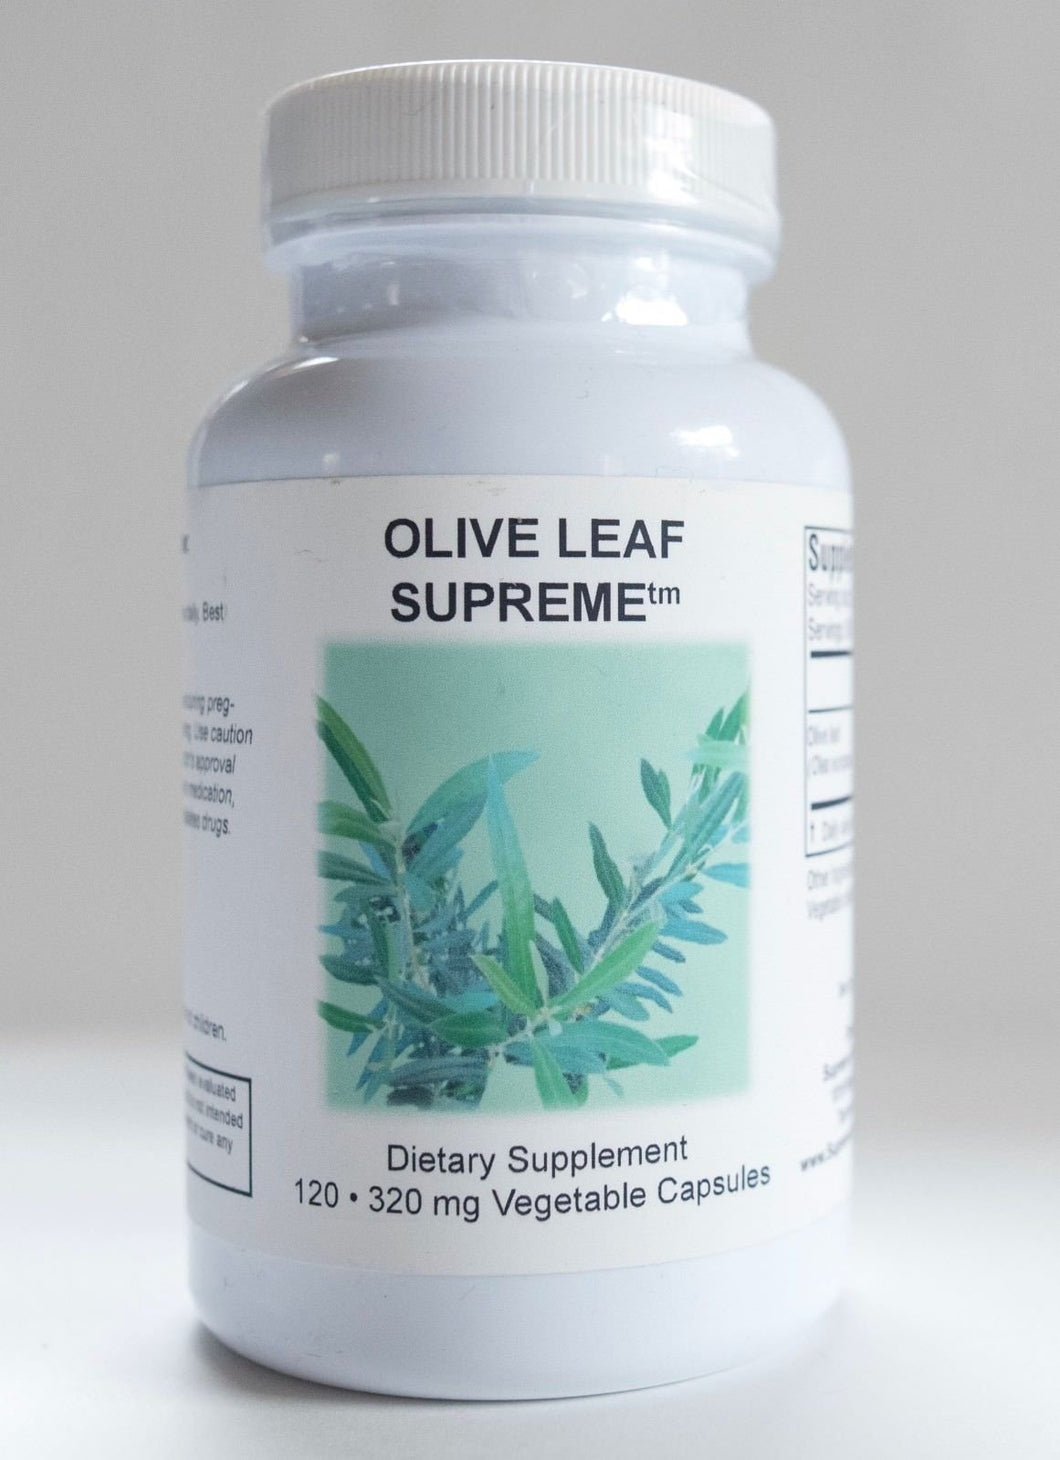 Olive Leaf Supreme by Supreme Nutrition. Antimicrobial, Antiviral, Heart Health